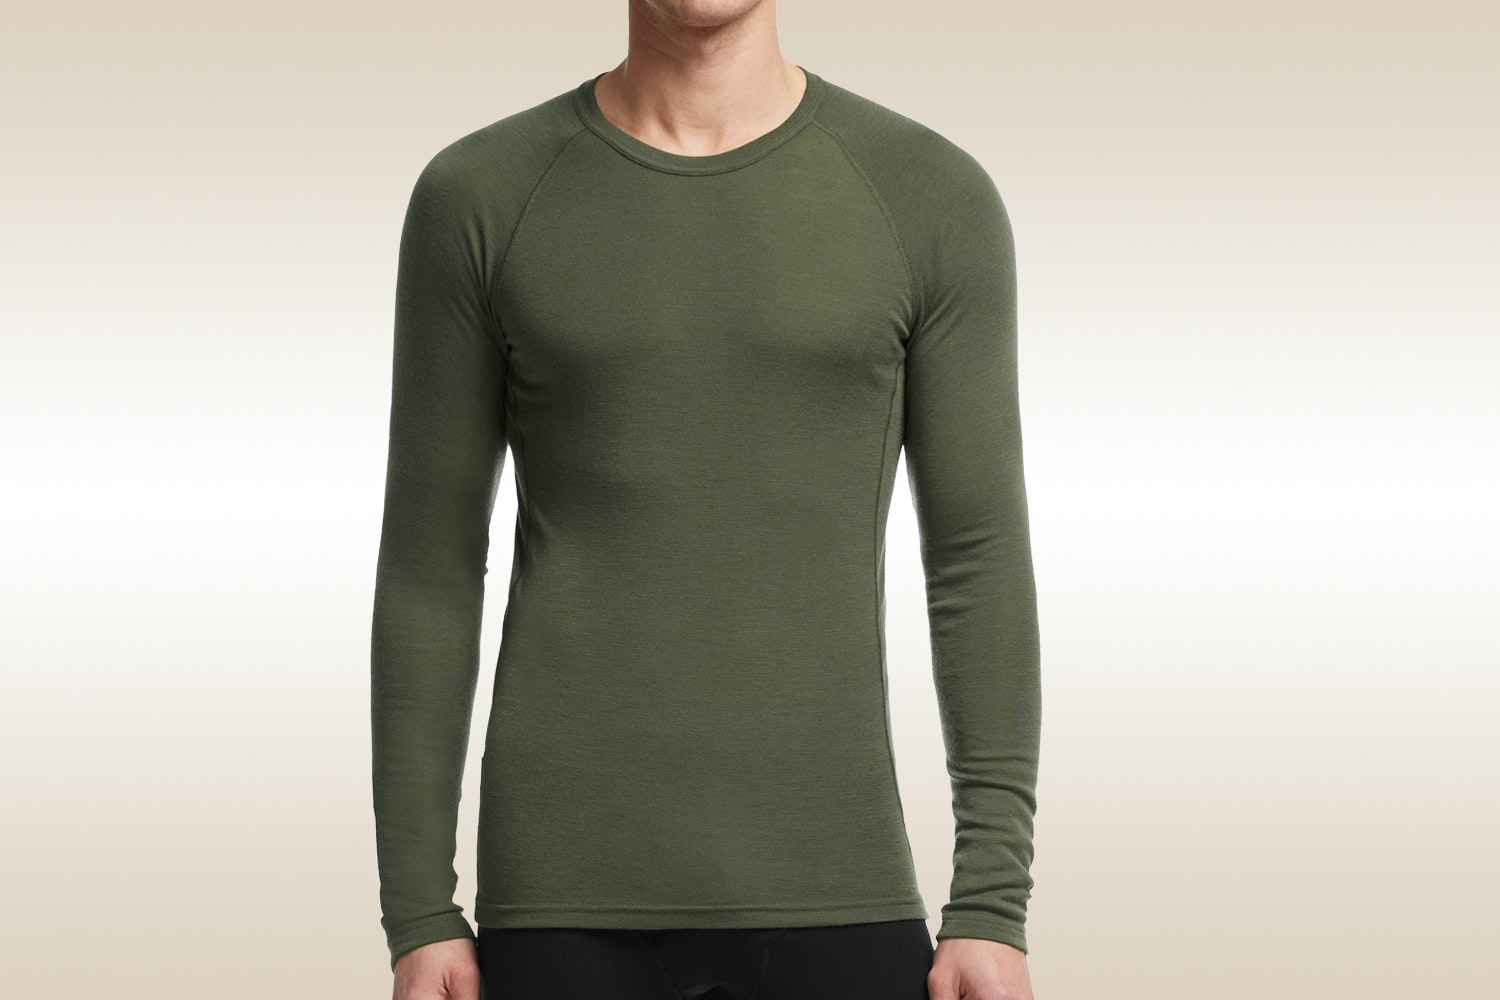 Icebreaker Merino Everyday Tops Closeout